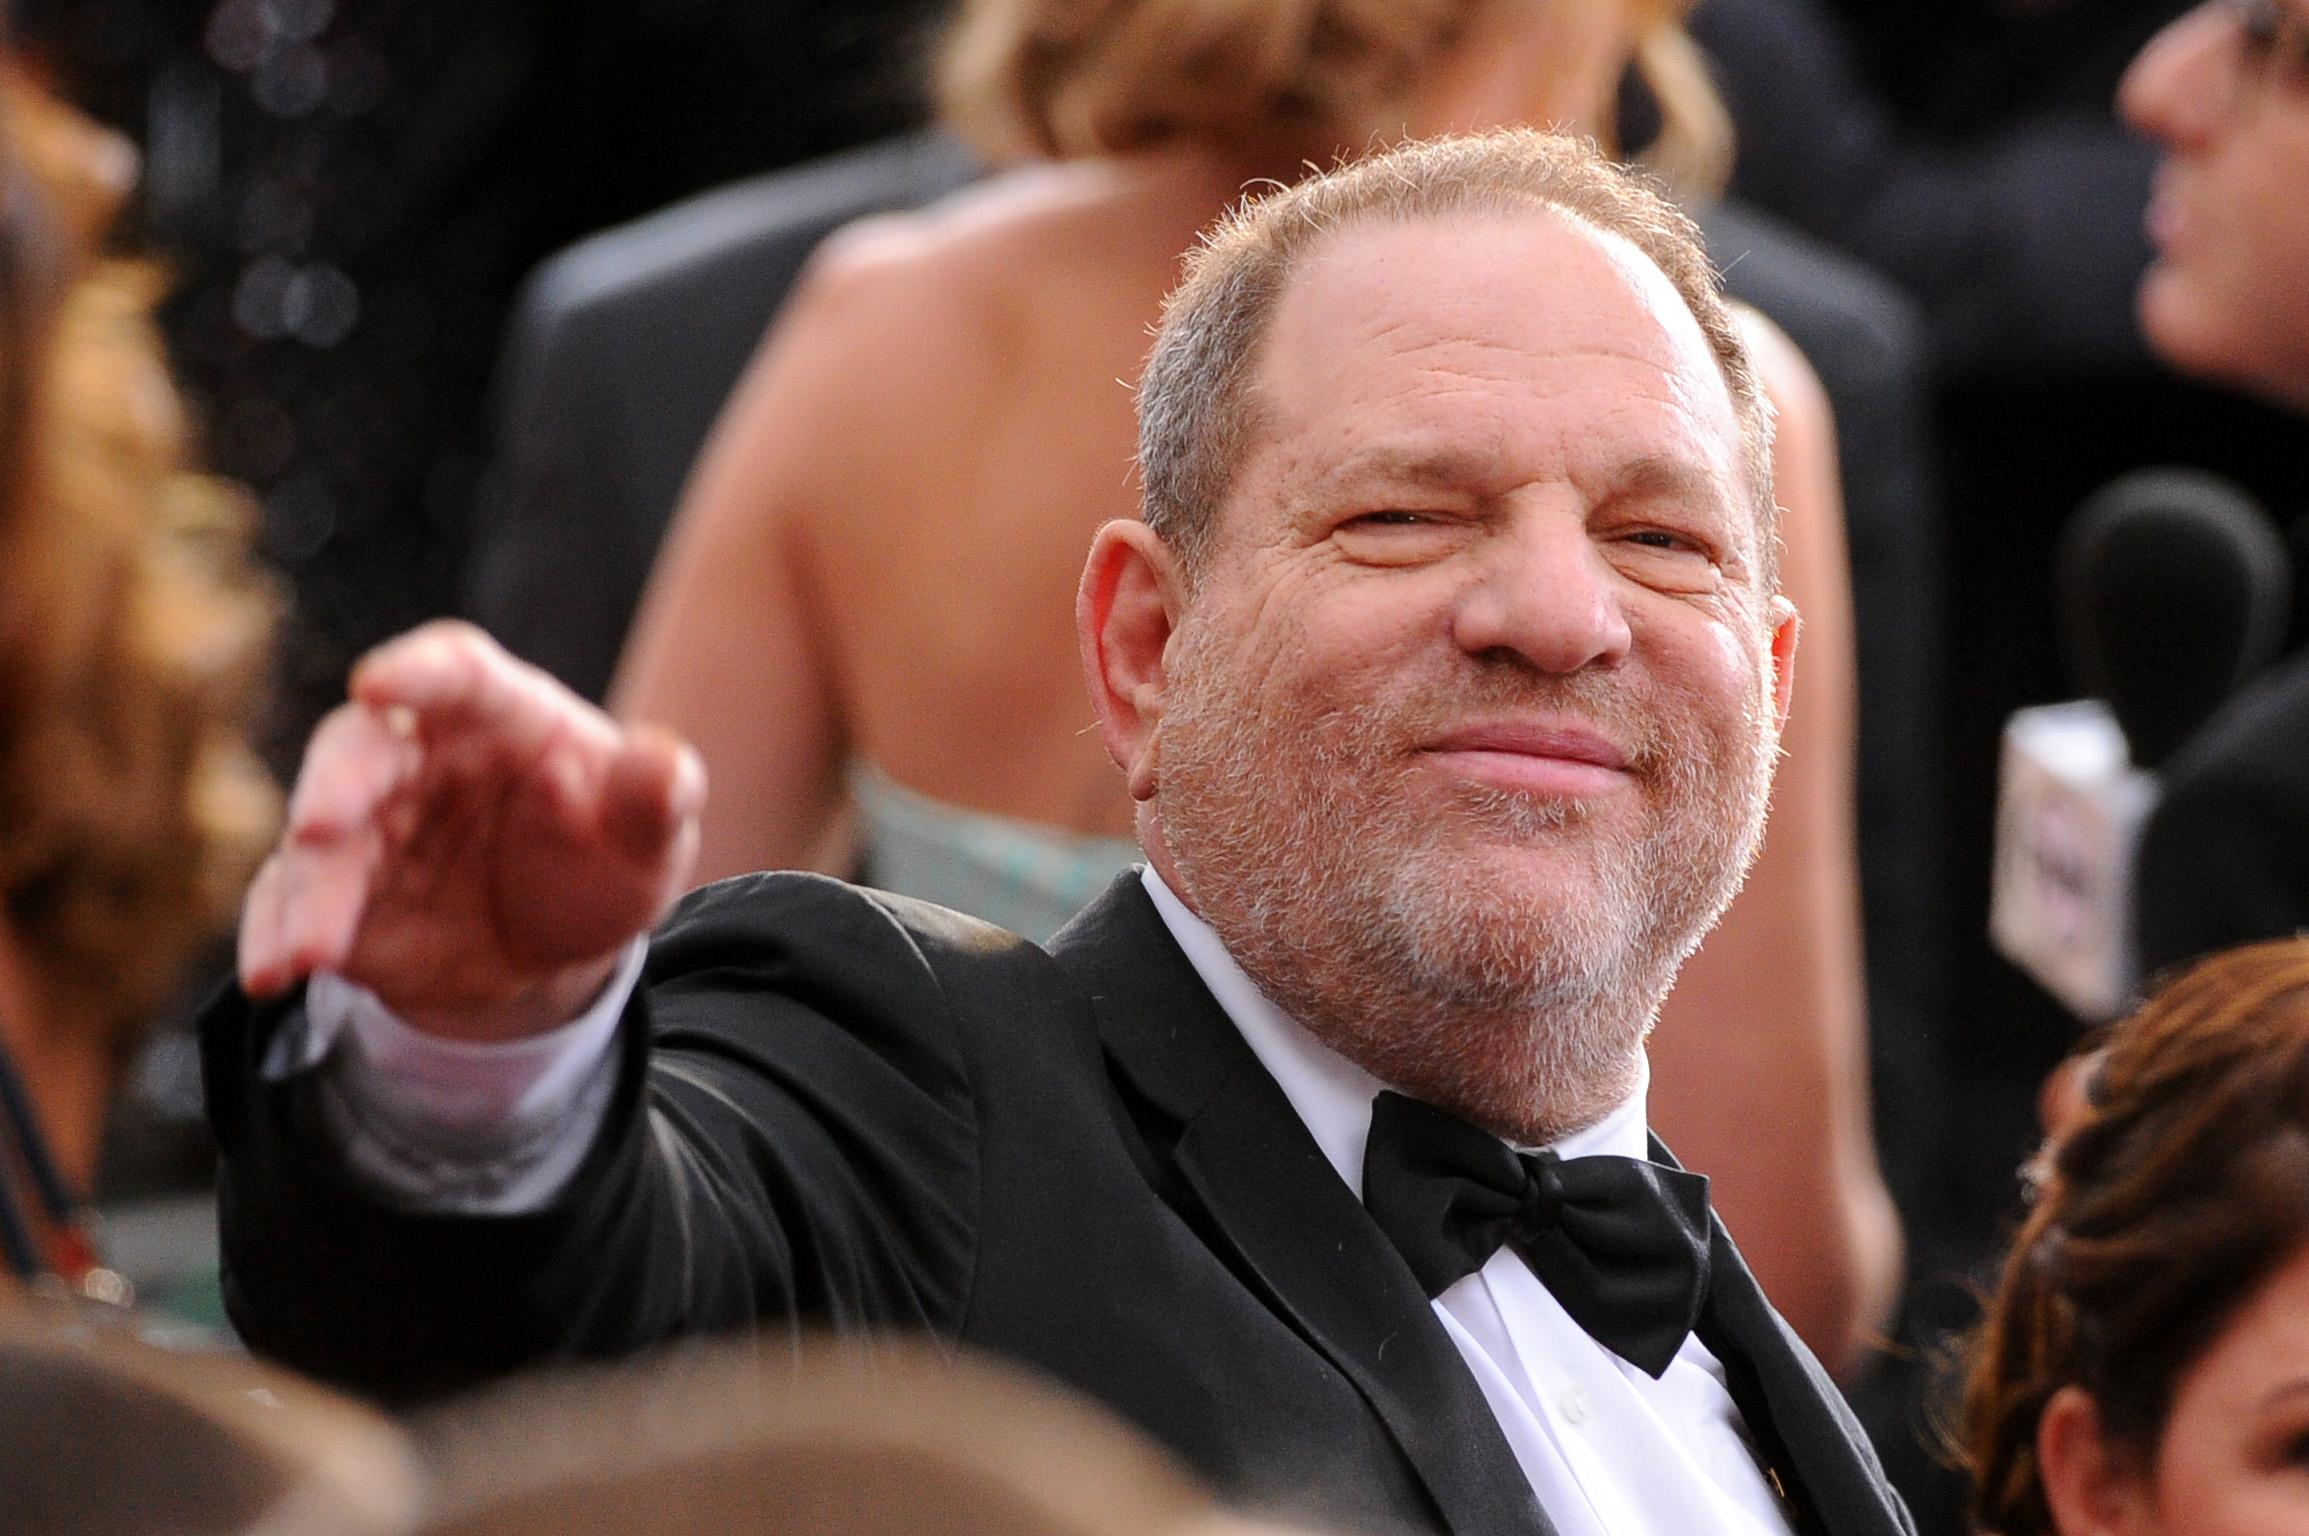 Hollywood Mogul Harvey Weinstein Takes Leave of Absence Amid Harassment Claims